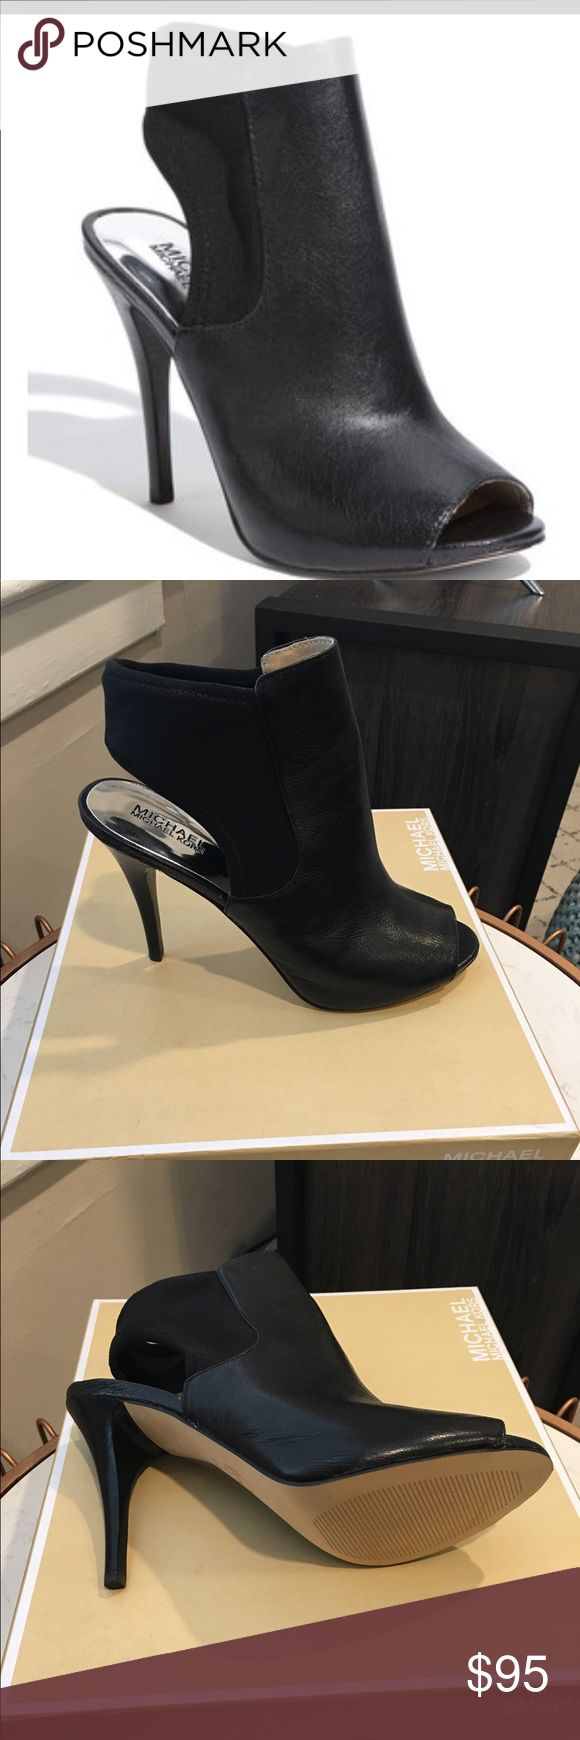 Micheal Kors Bootie Black MK: Tonne Black Bootie never worn! Clean soles. Size 10! In perfect condition. High stiletto heel, open toe and open sling back. Leather front! Perfect for so many looks! Michael Kors Shoes Ankle Boots & Booties